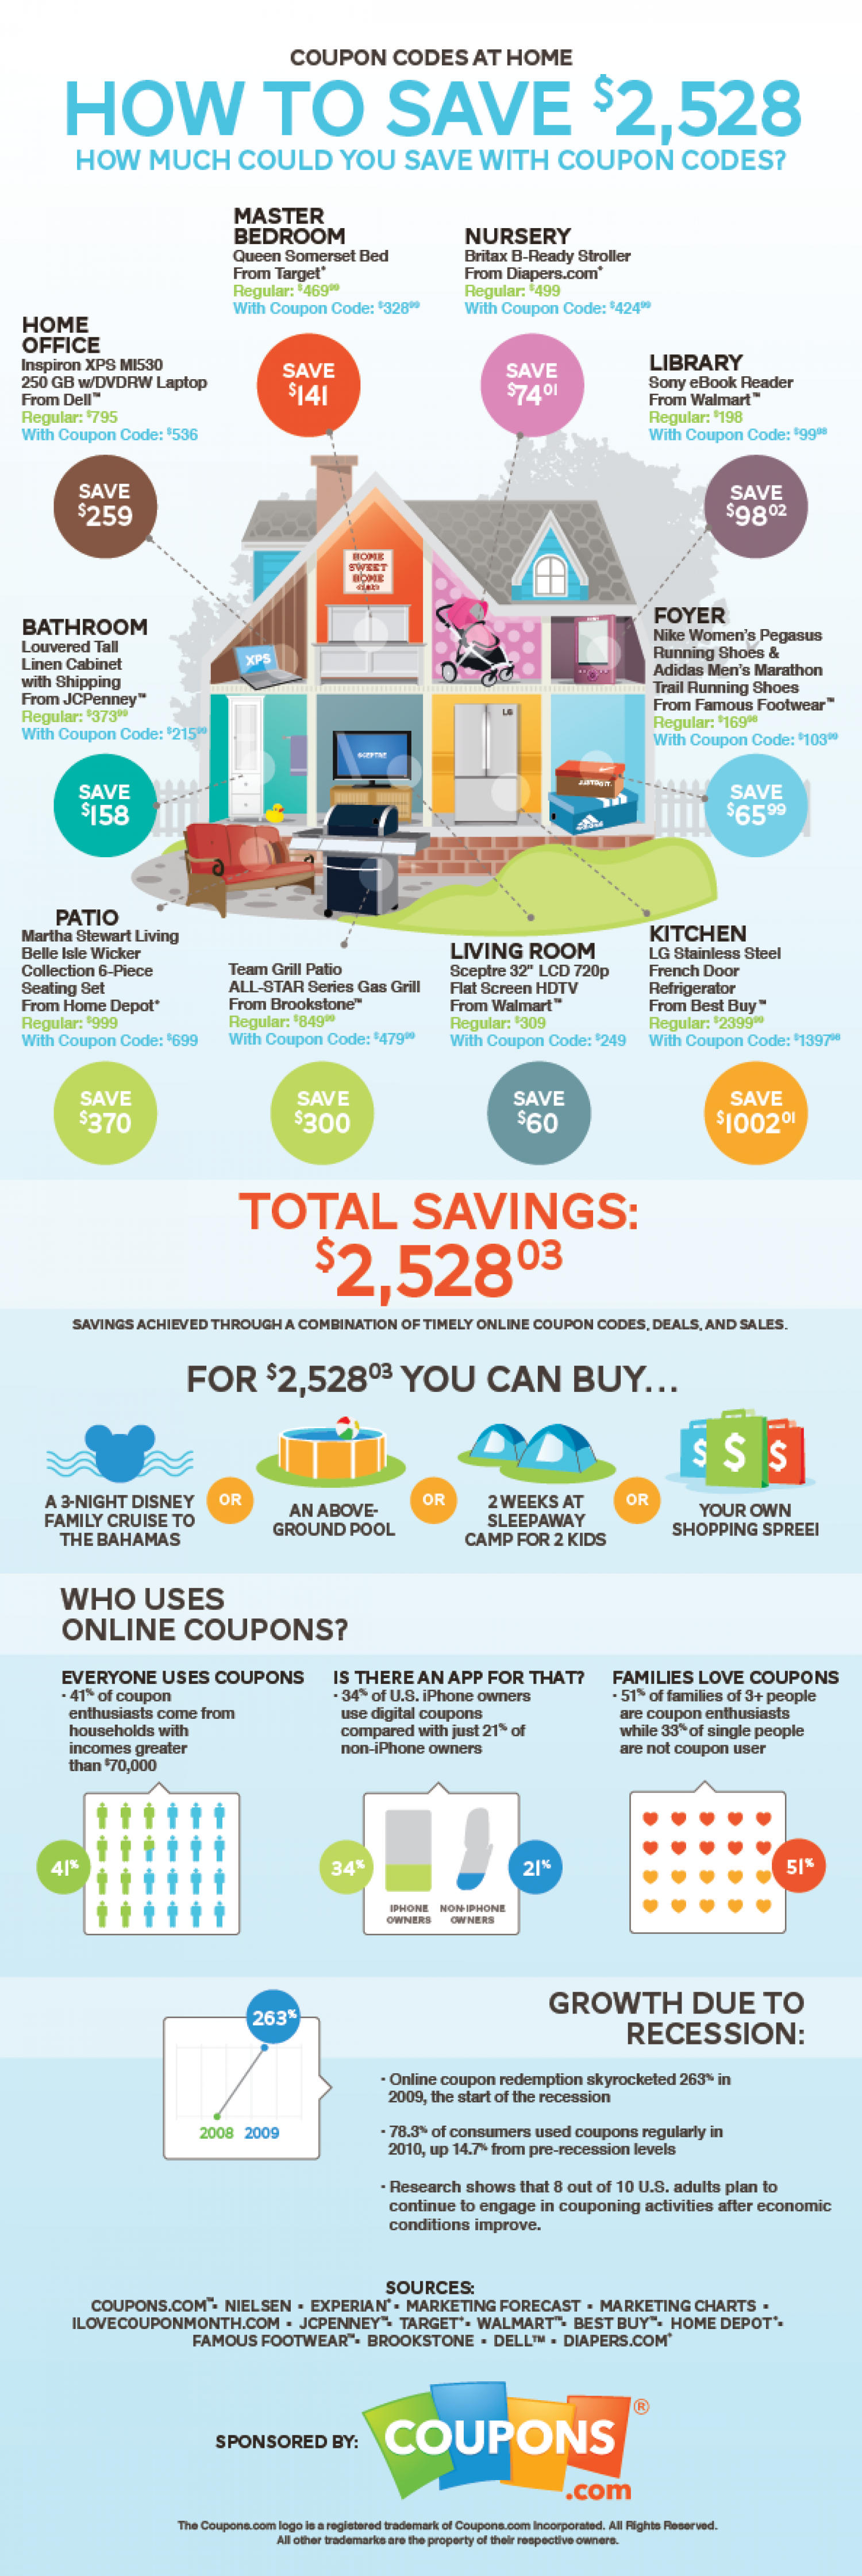 Coupon Codes at Home Infographic